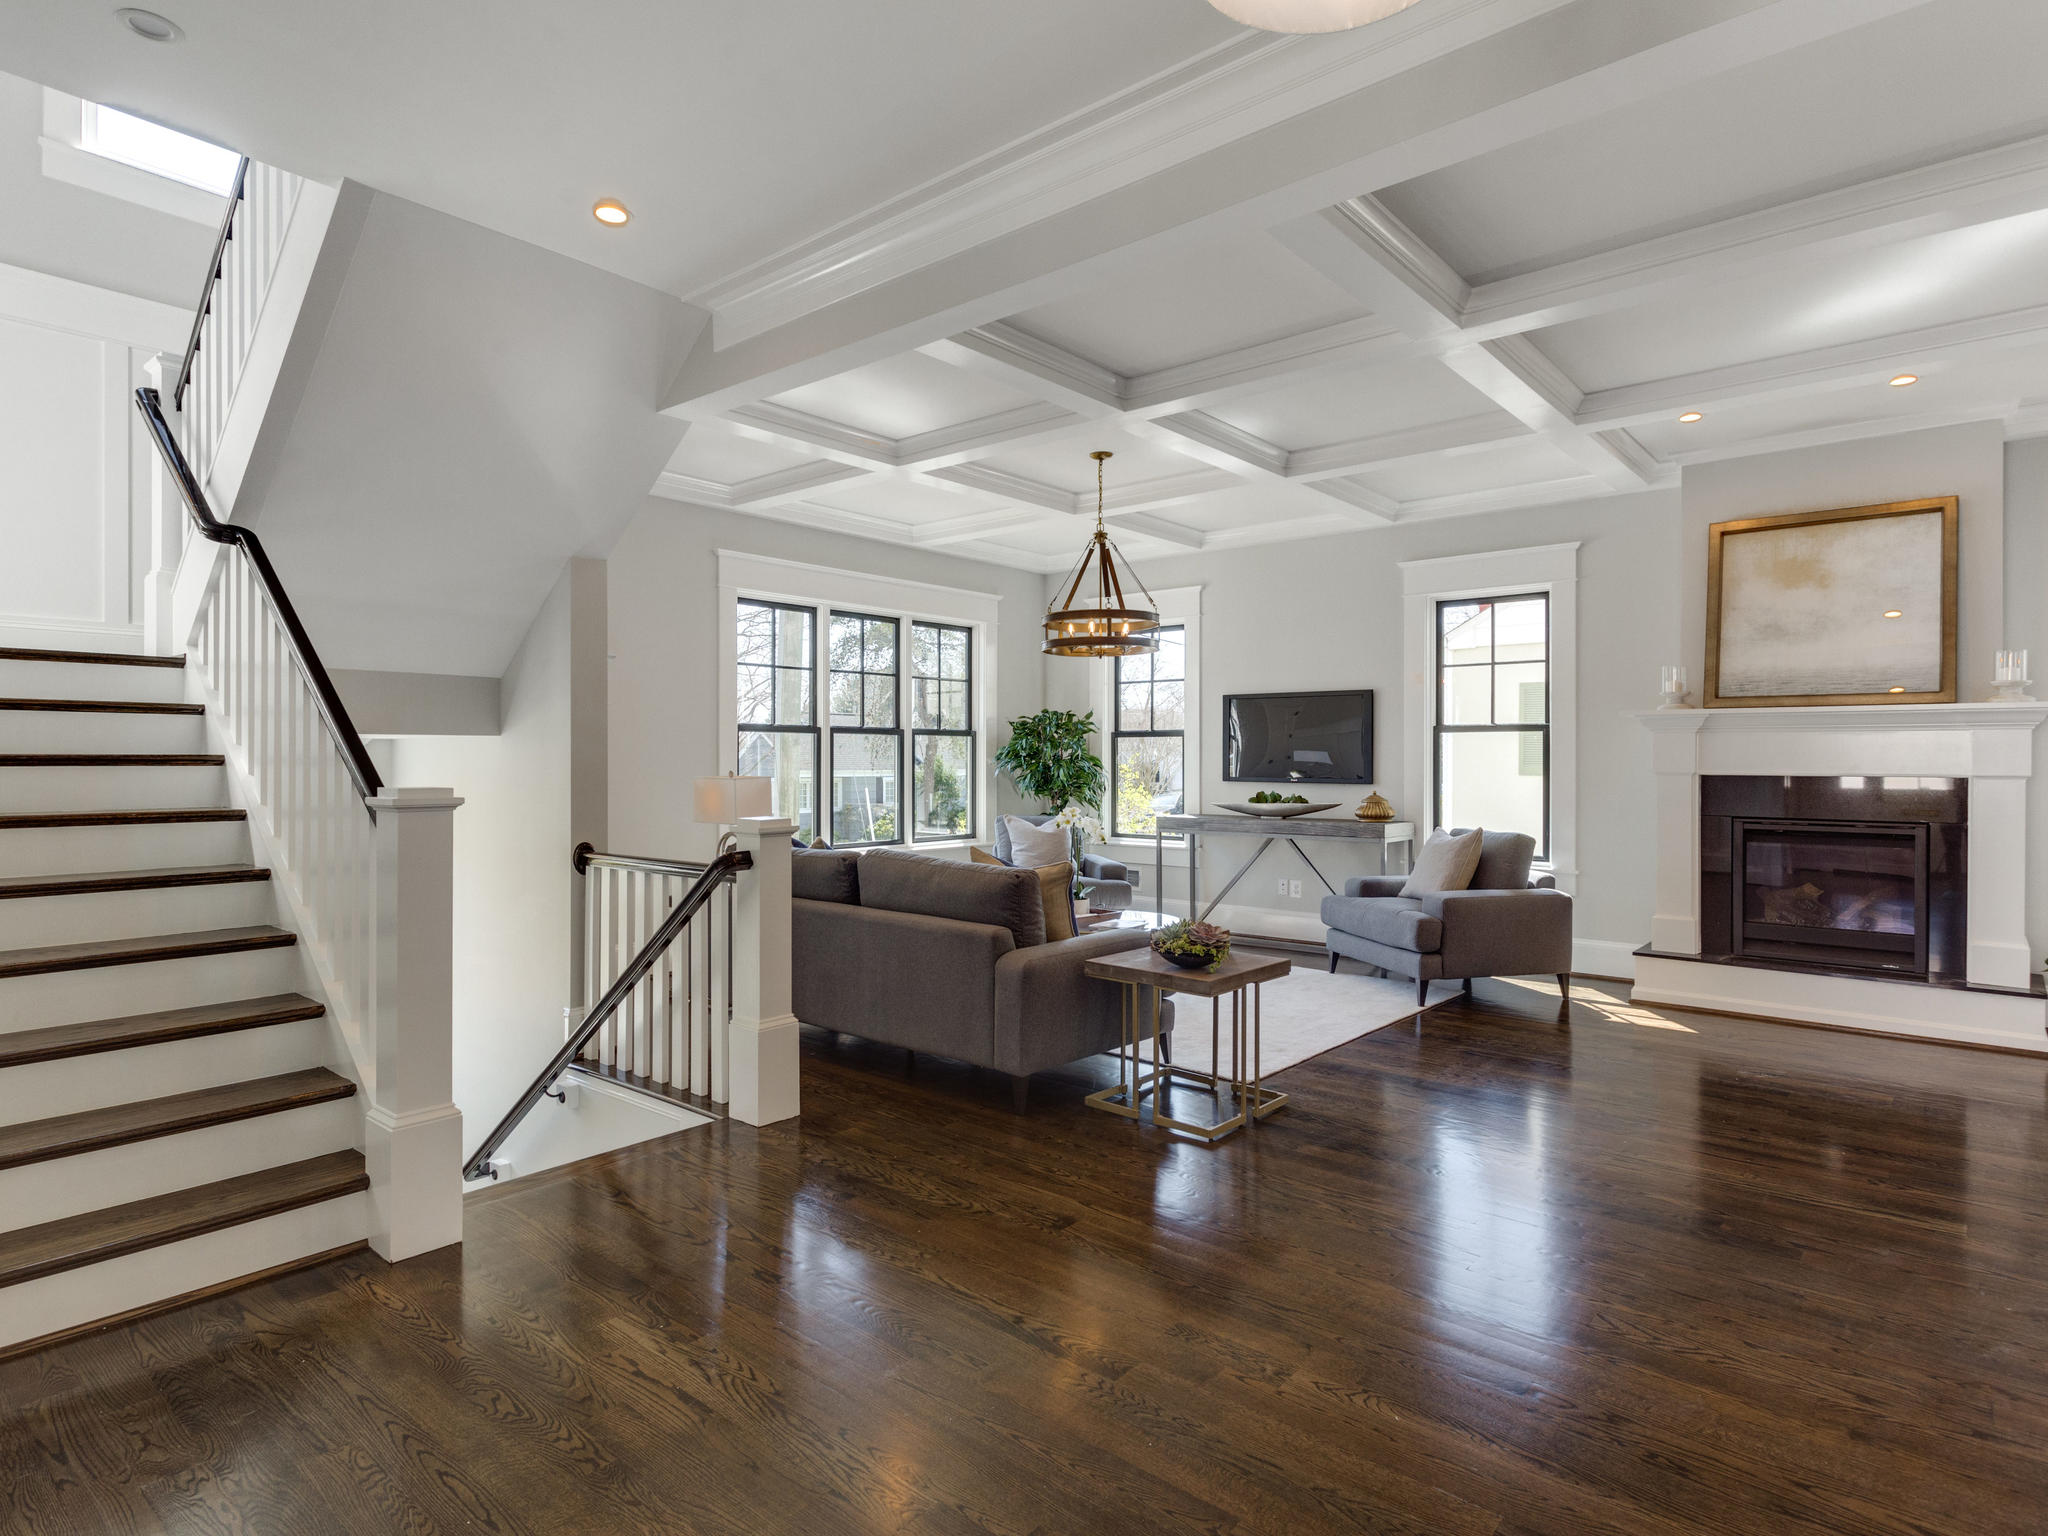 Family room with coffered ceiling. Custom Home by Custom Builder, North Arlington, VA 22207